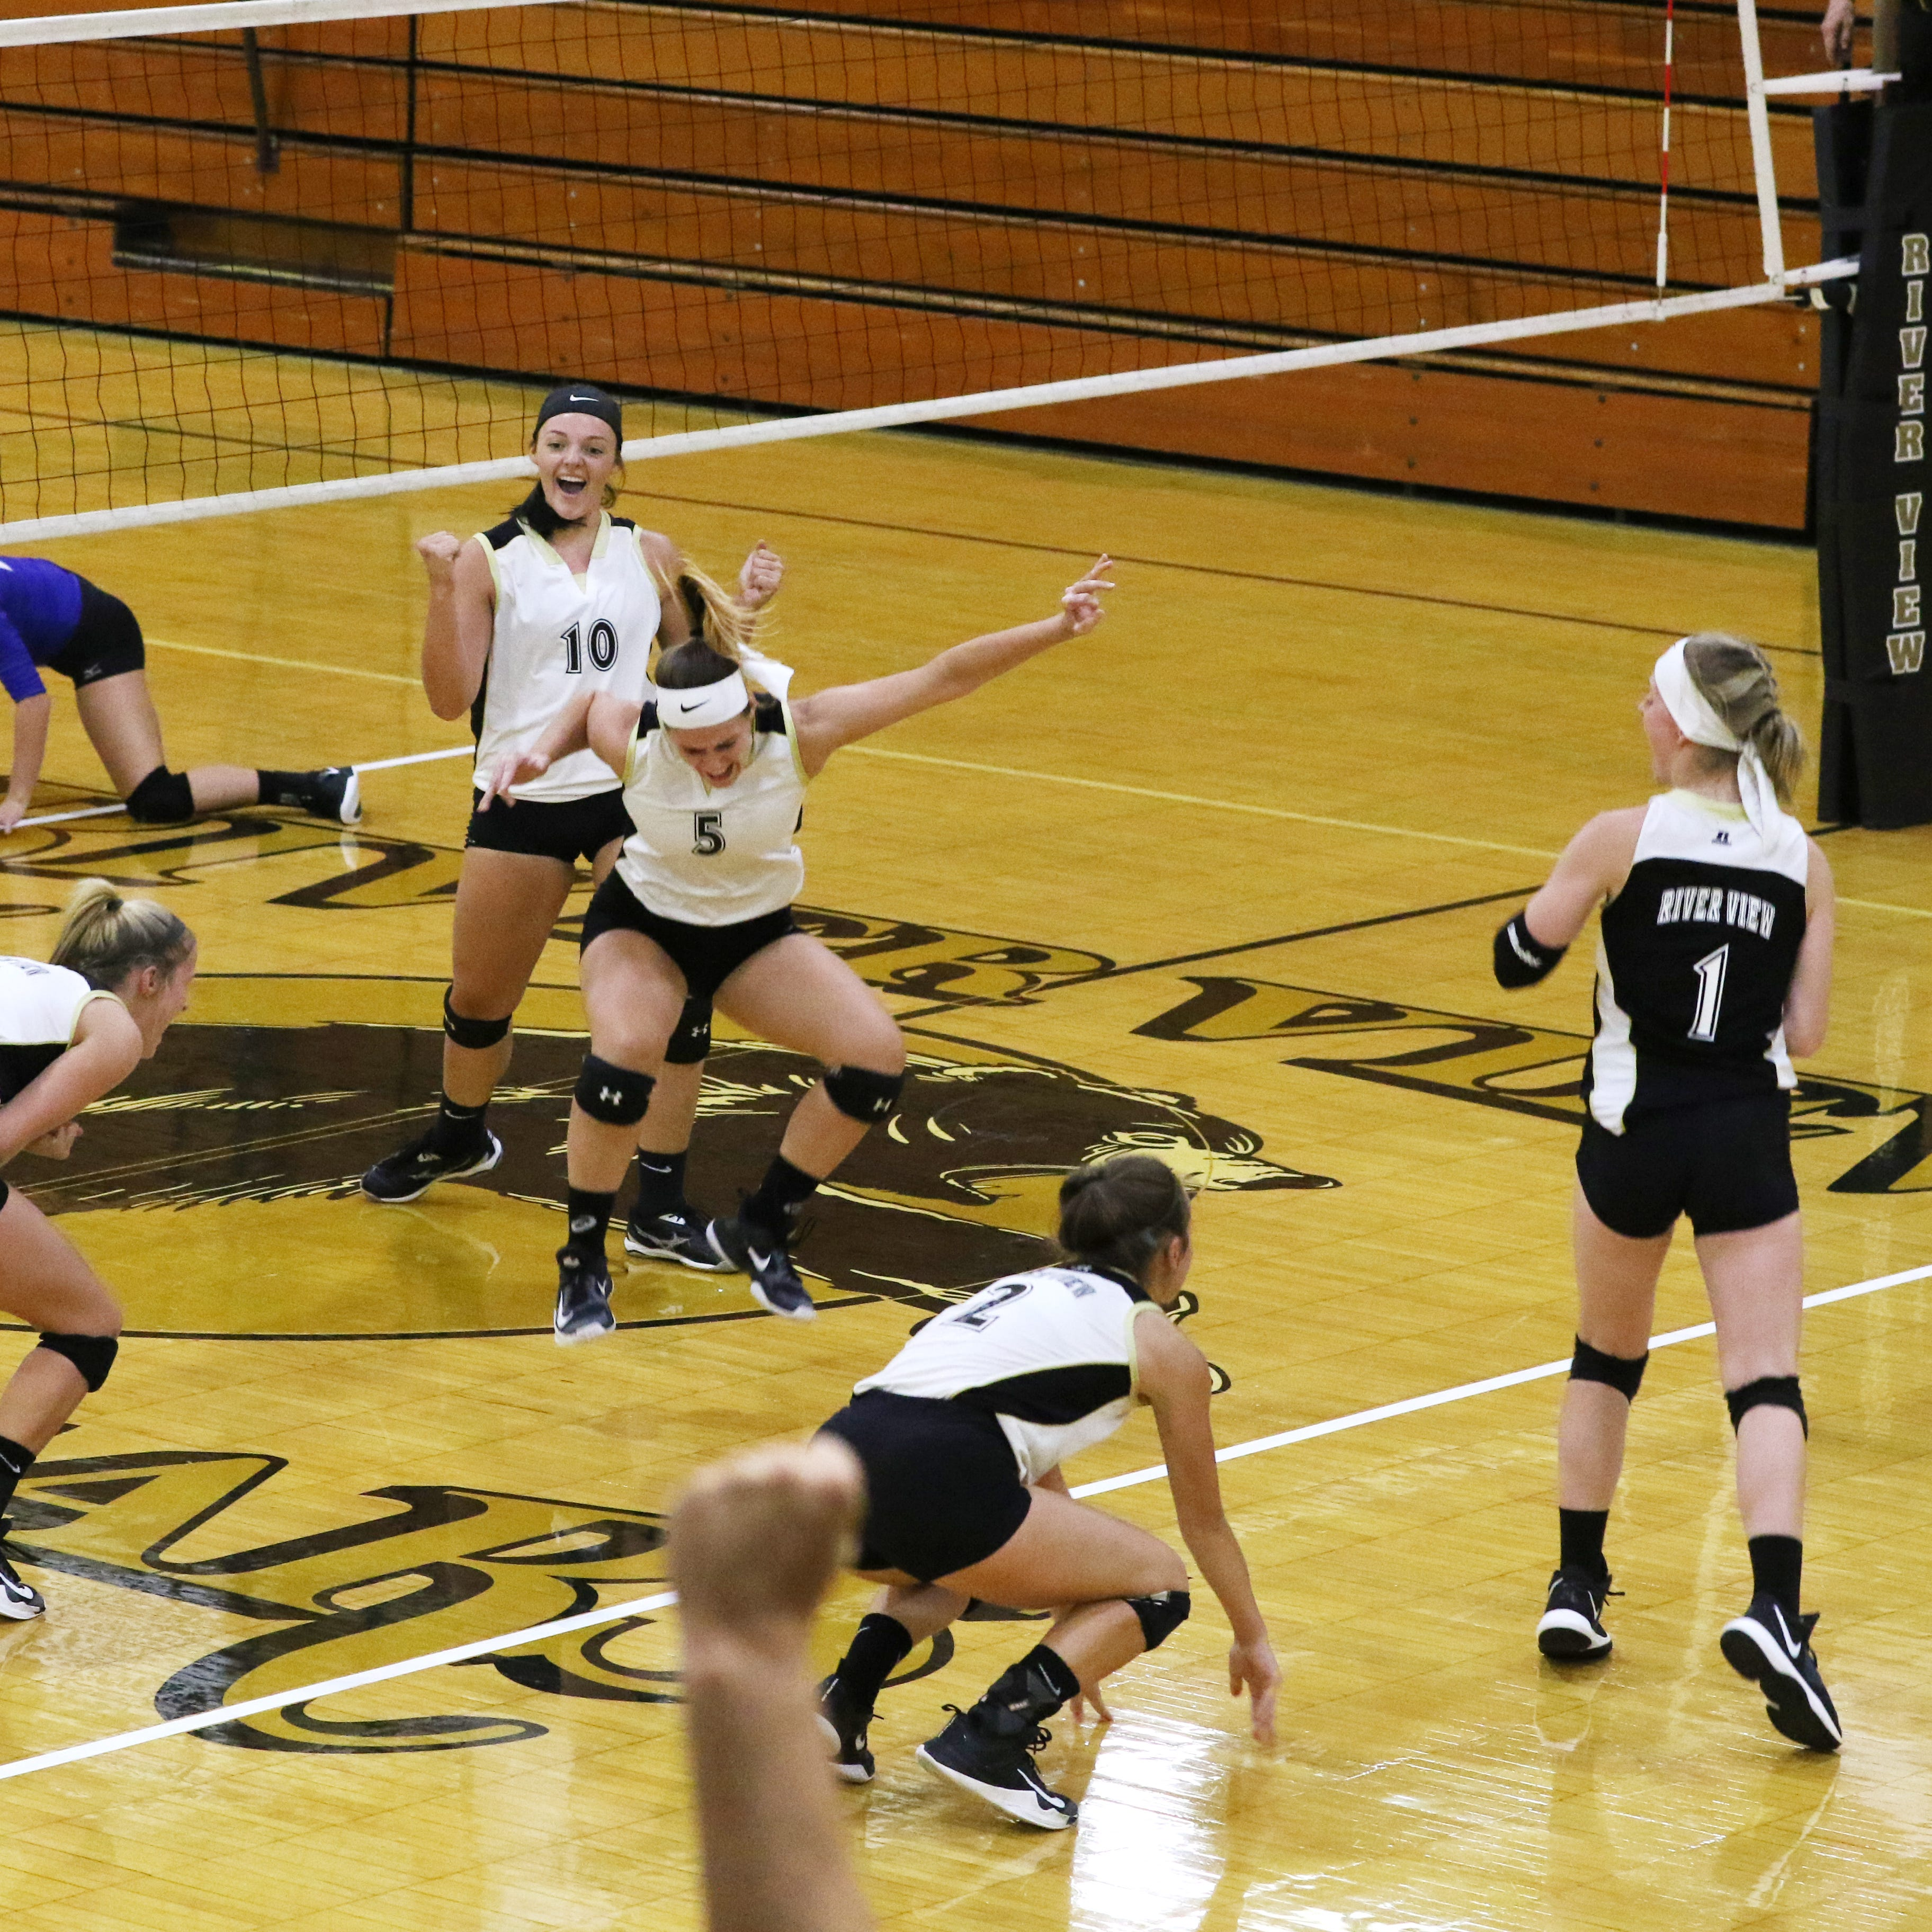 River View celebrates 50 years of volleyball